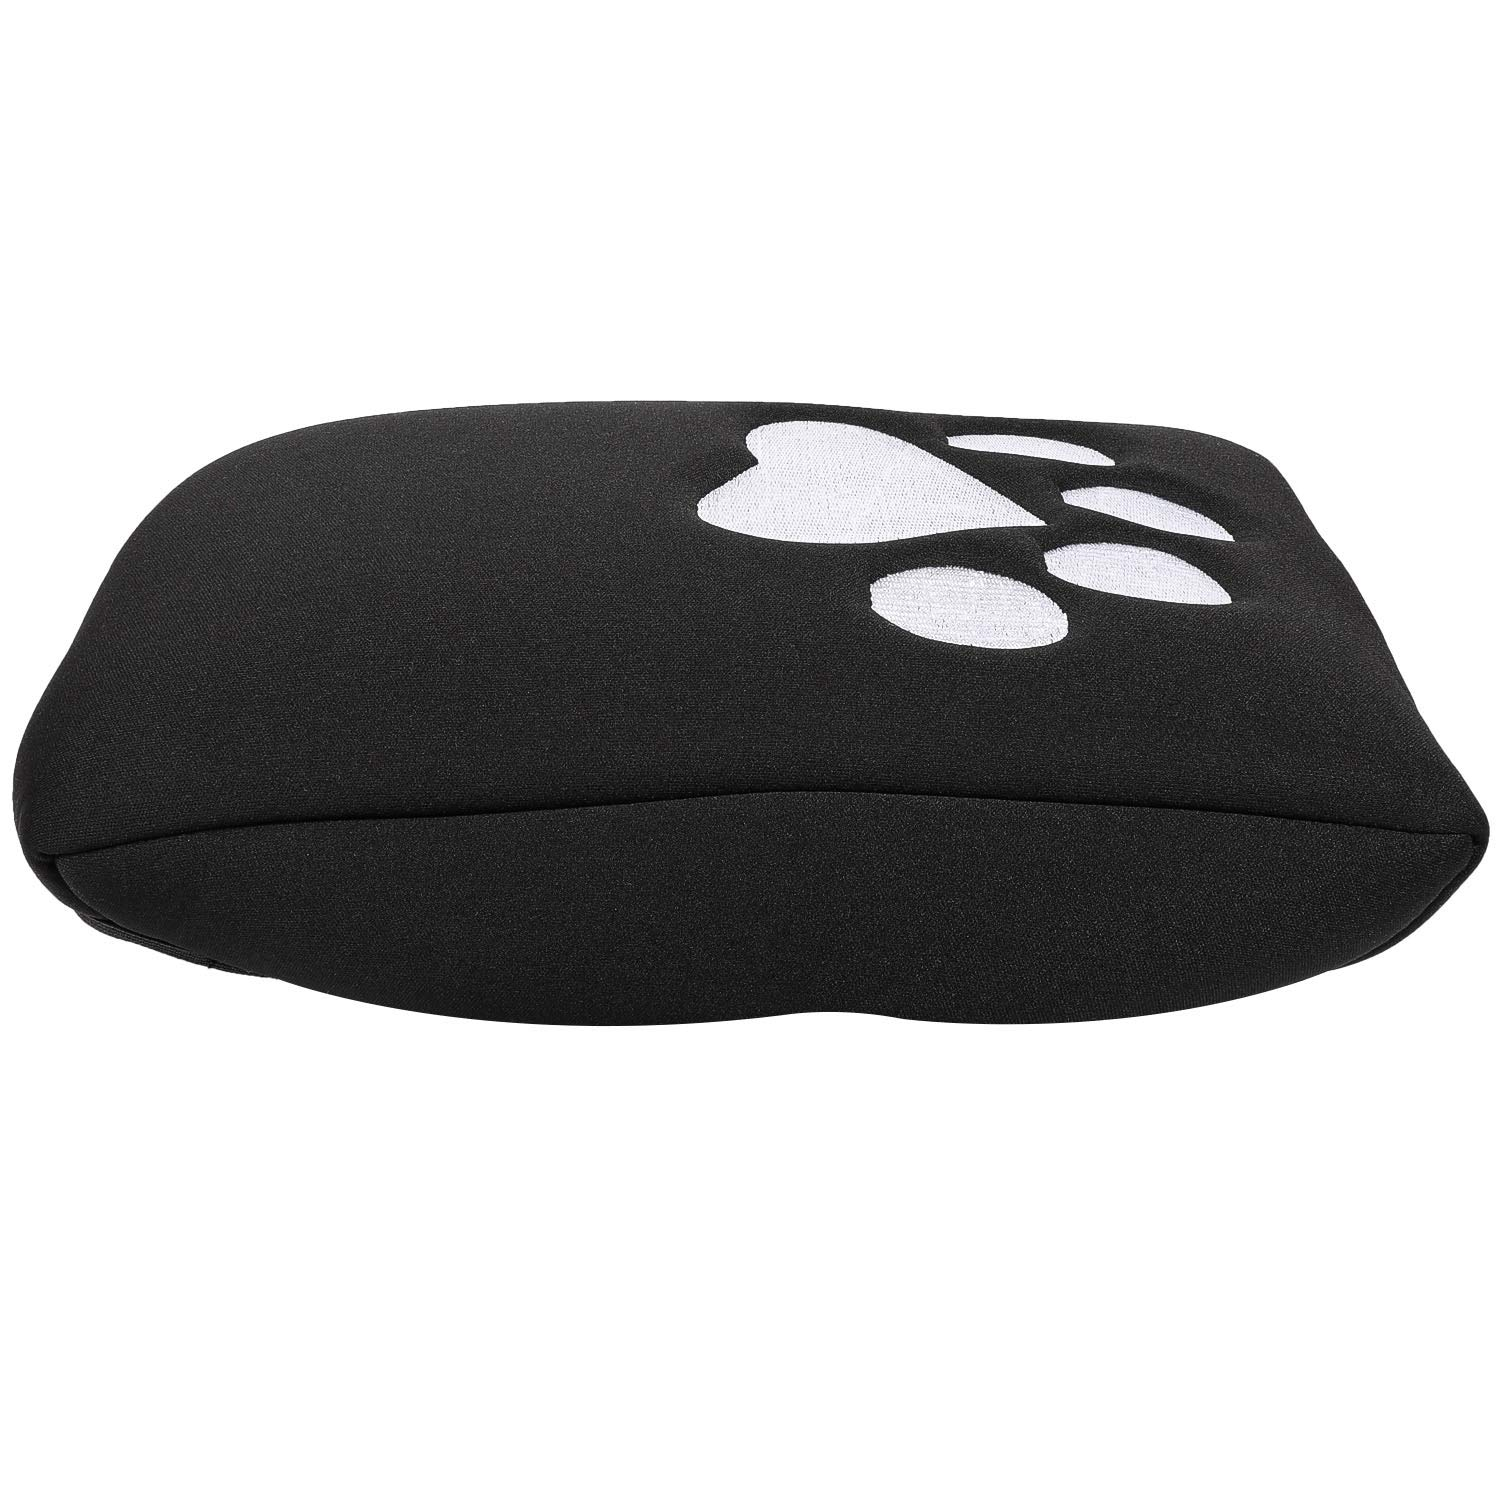 Sunluway Neoprene Center Console Armrest Pad Cover Protector Cushion for Jeep Wrangler JL 2018 2019 Dog Paw Sewing Logo